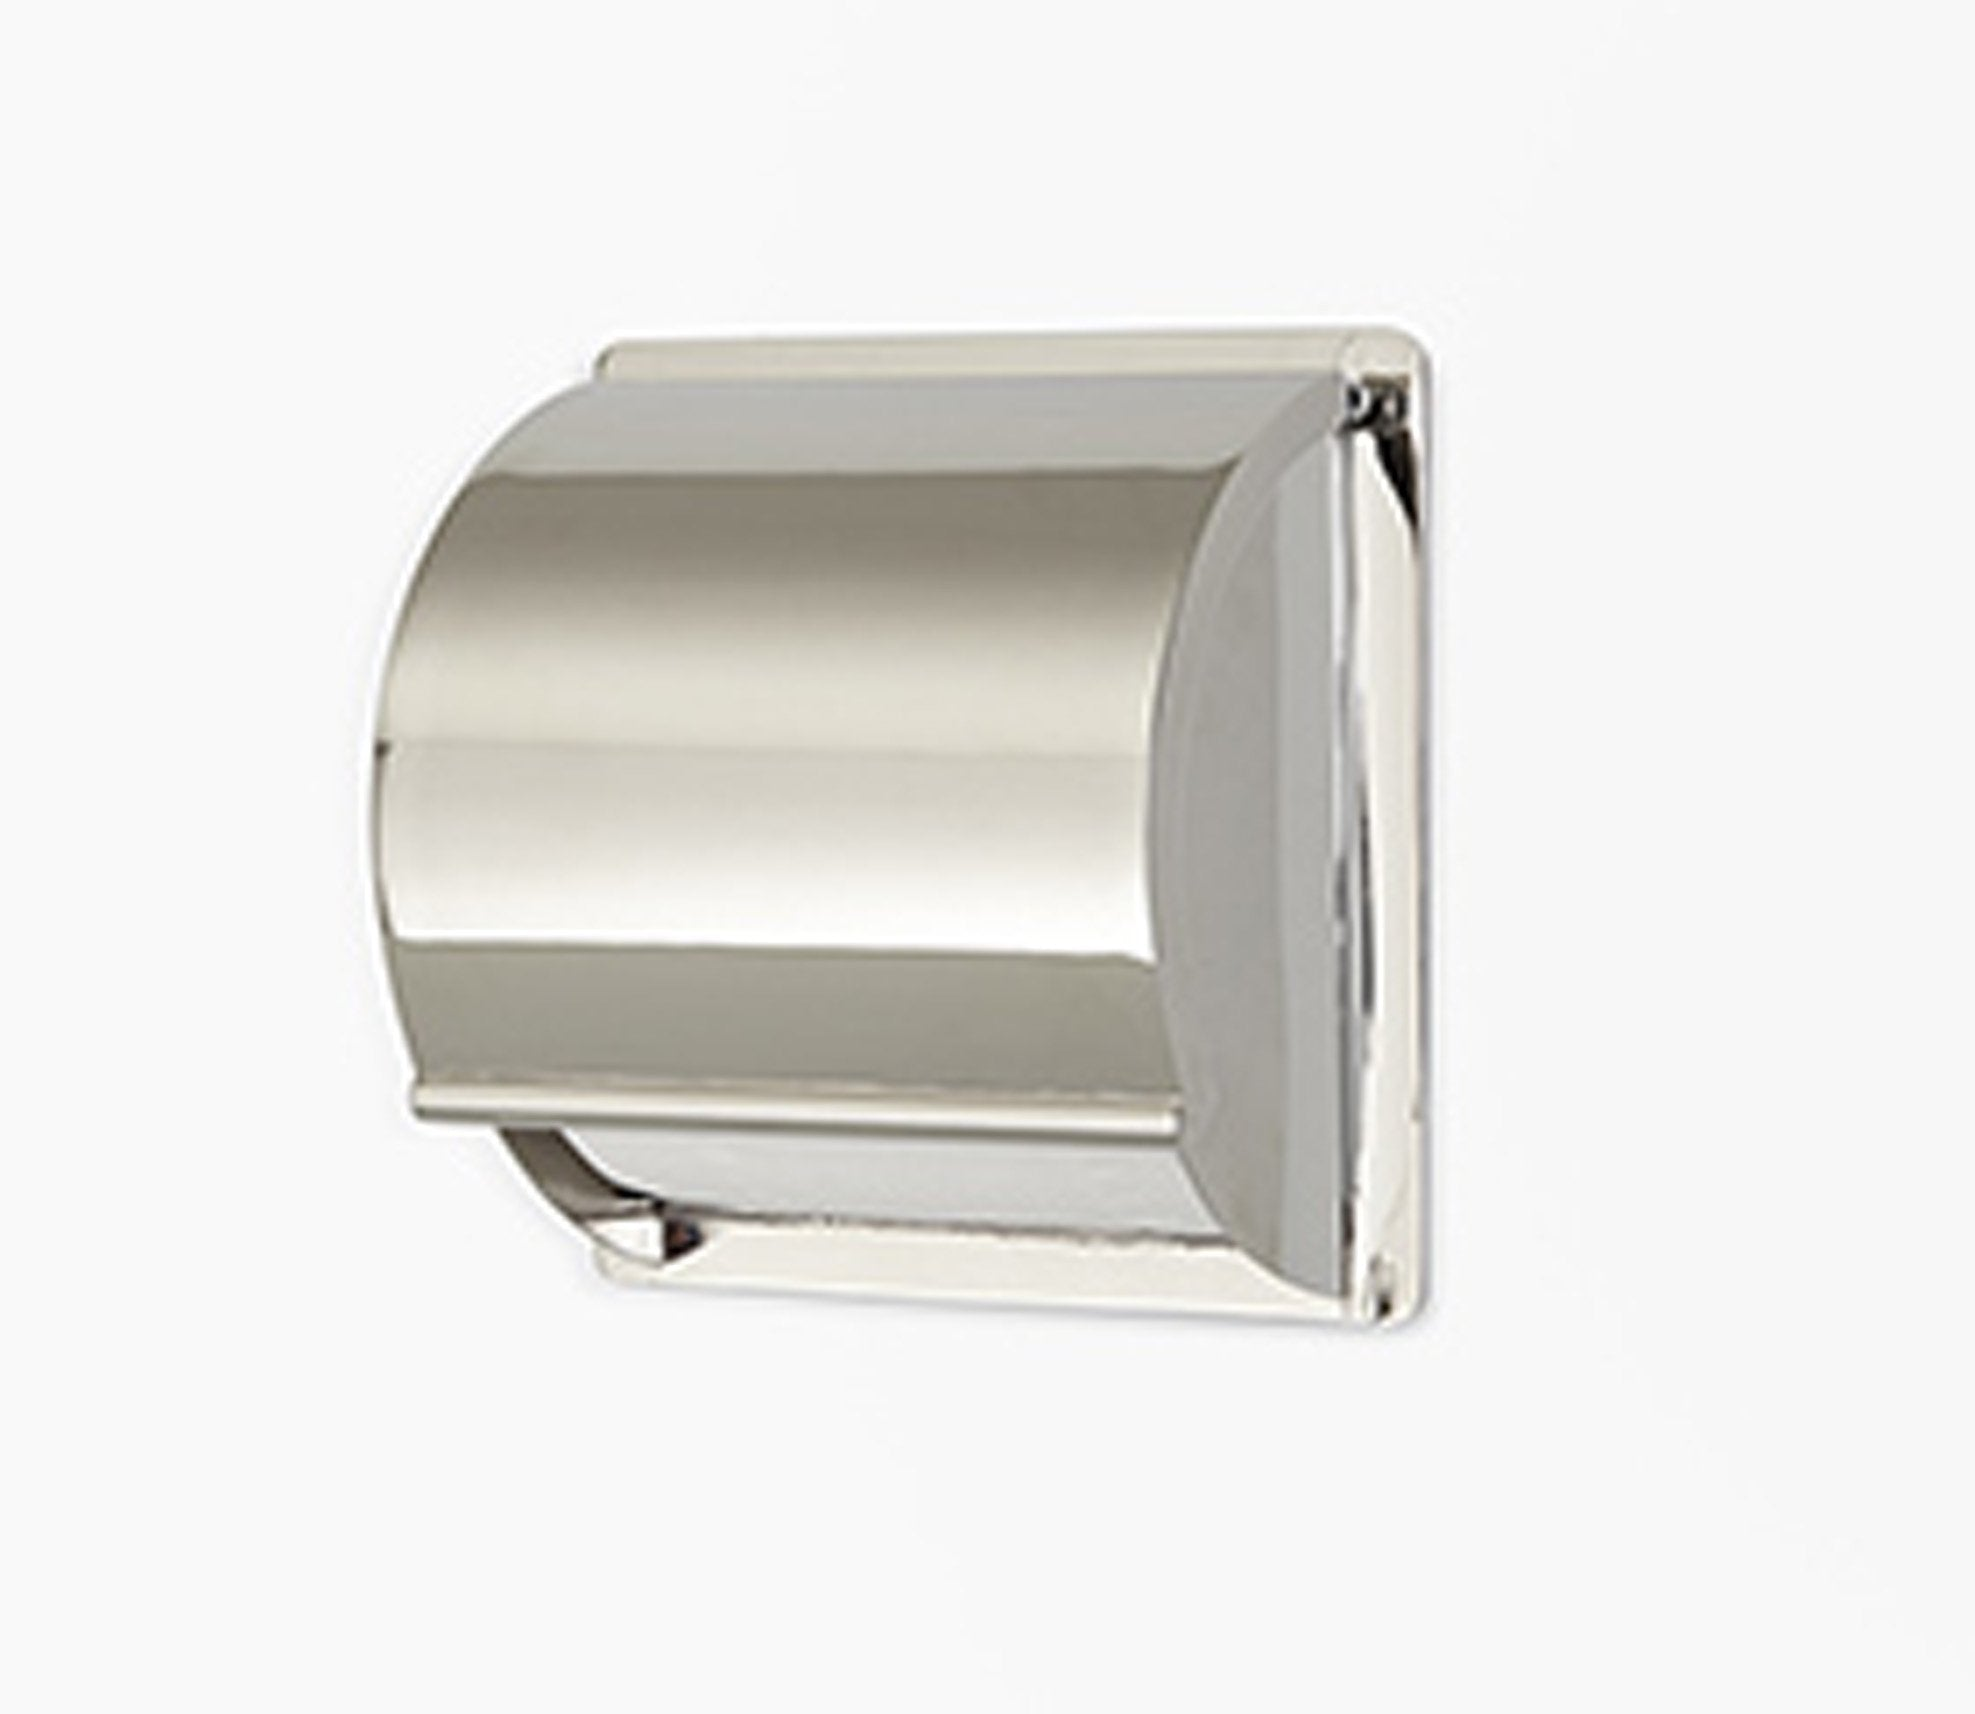 Wall Recessed Toilet Paper Holder Balineum